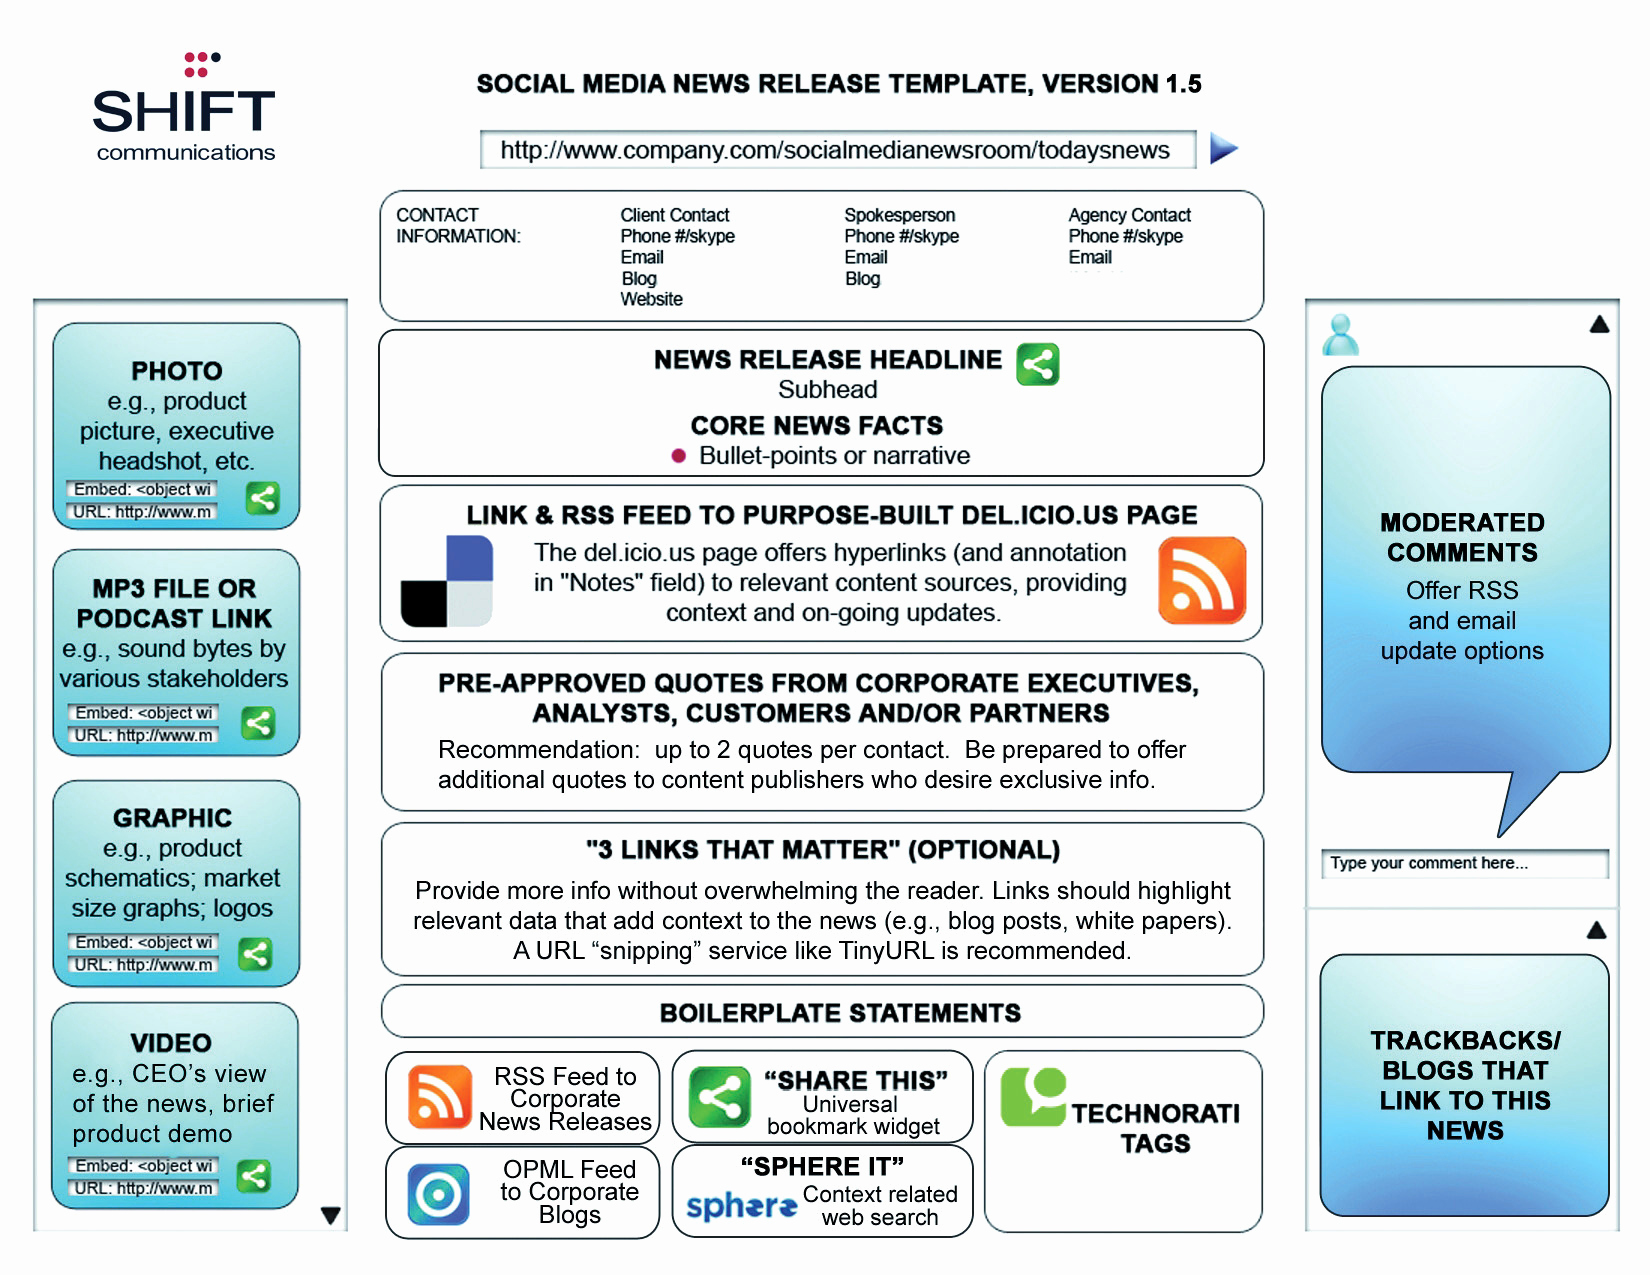 Social Media Reports Template Best Of Press Releases Optimized for Search and for social Media